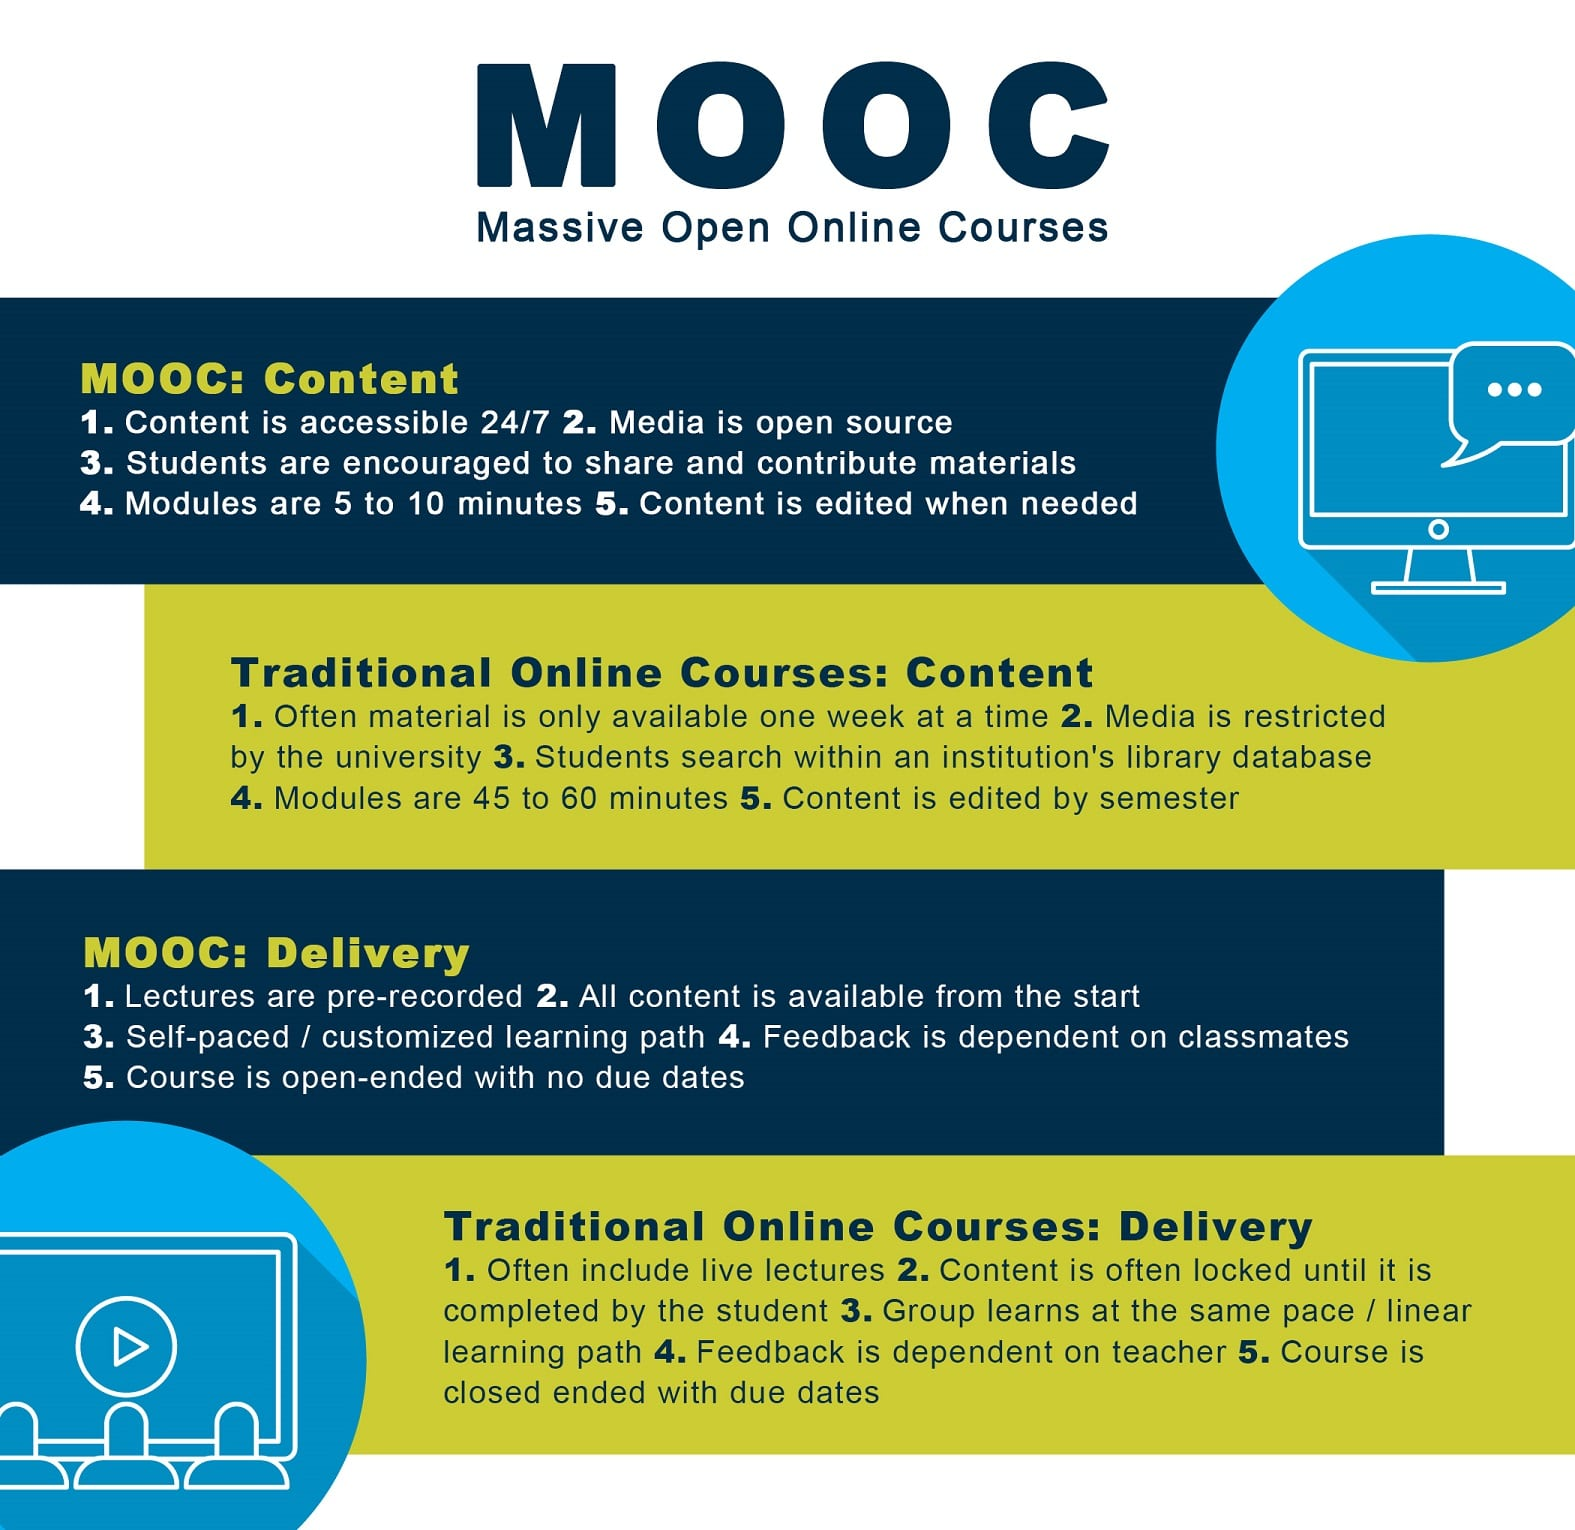 Differences between a MOOC Course and Traditional Online Course